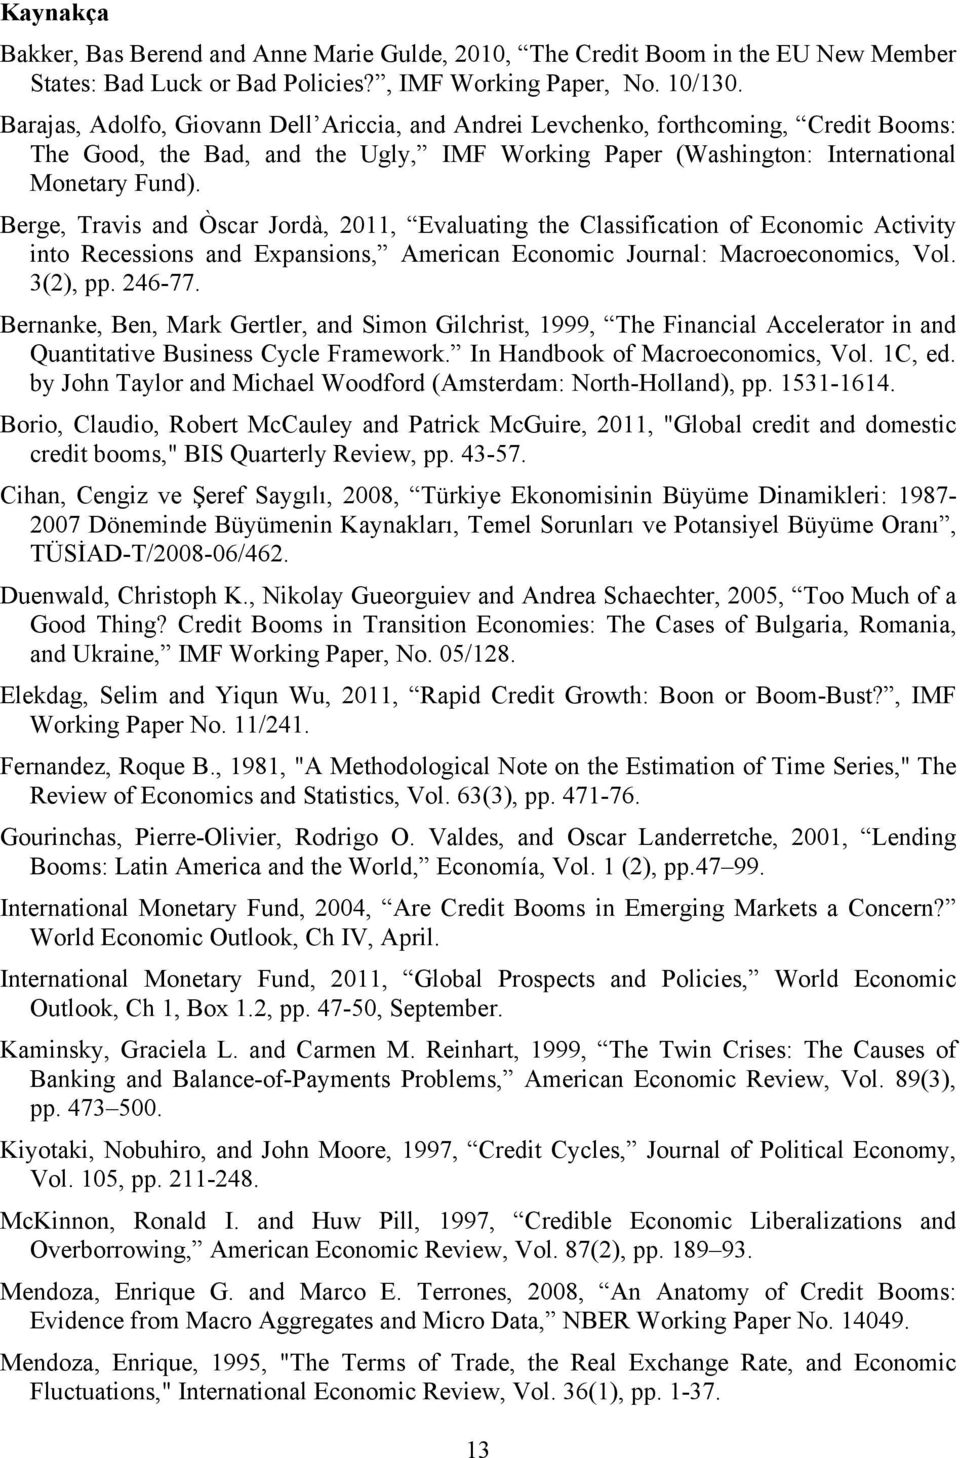 Berge, Travis and Òscar Jordà, 2011, Evaluating the Classification of Economic Activity into Recessions and Expansions, American Economic Journal: Macroeconomics, Vol. 3(2), pp. 246-77.